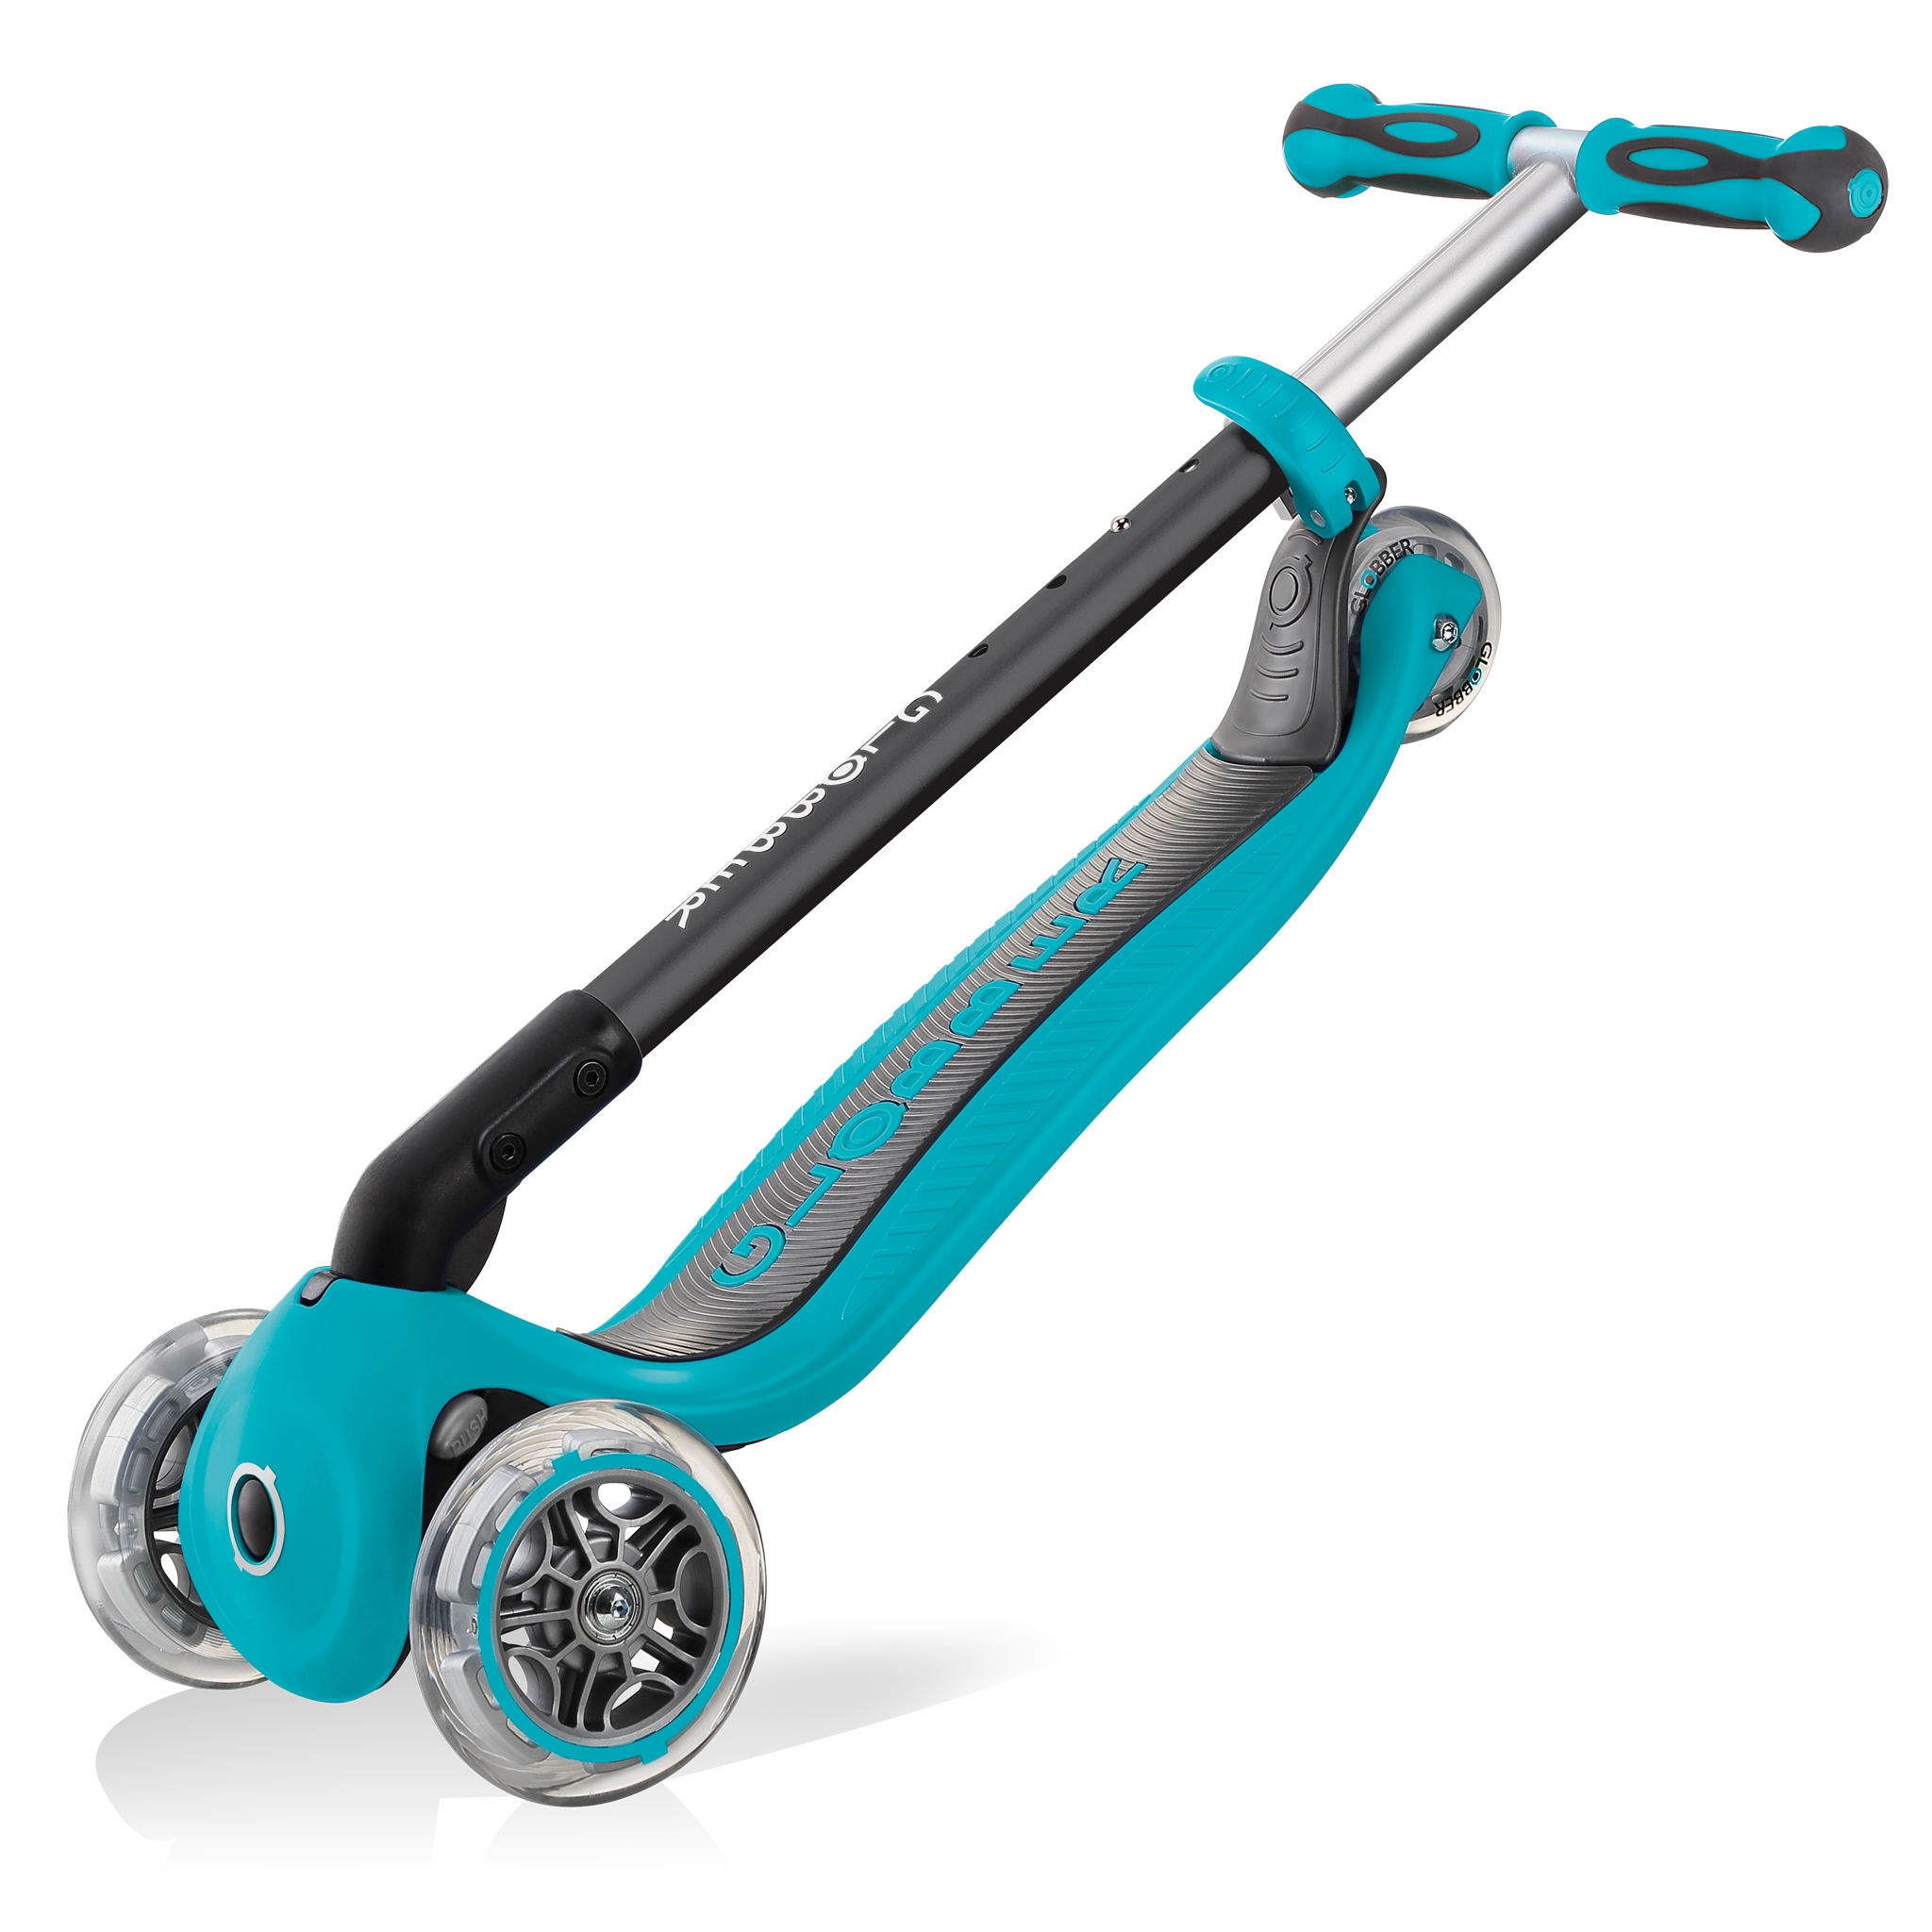 GO-UP-DELUXE-ride-on-walking-bike-scooter-trolley-mode-compatible-teal 5